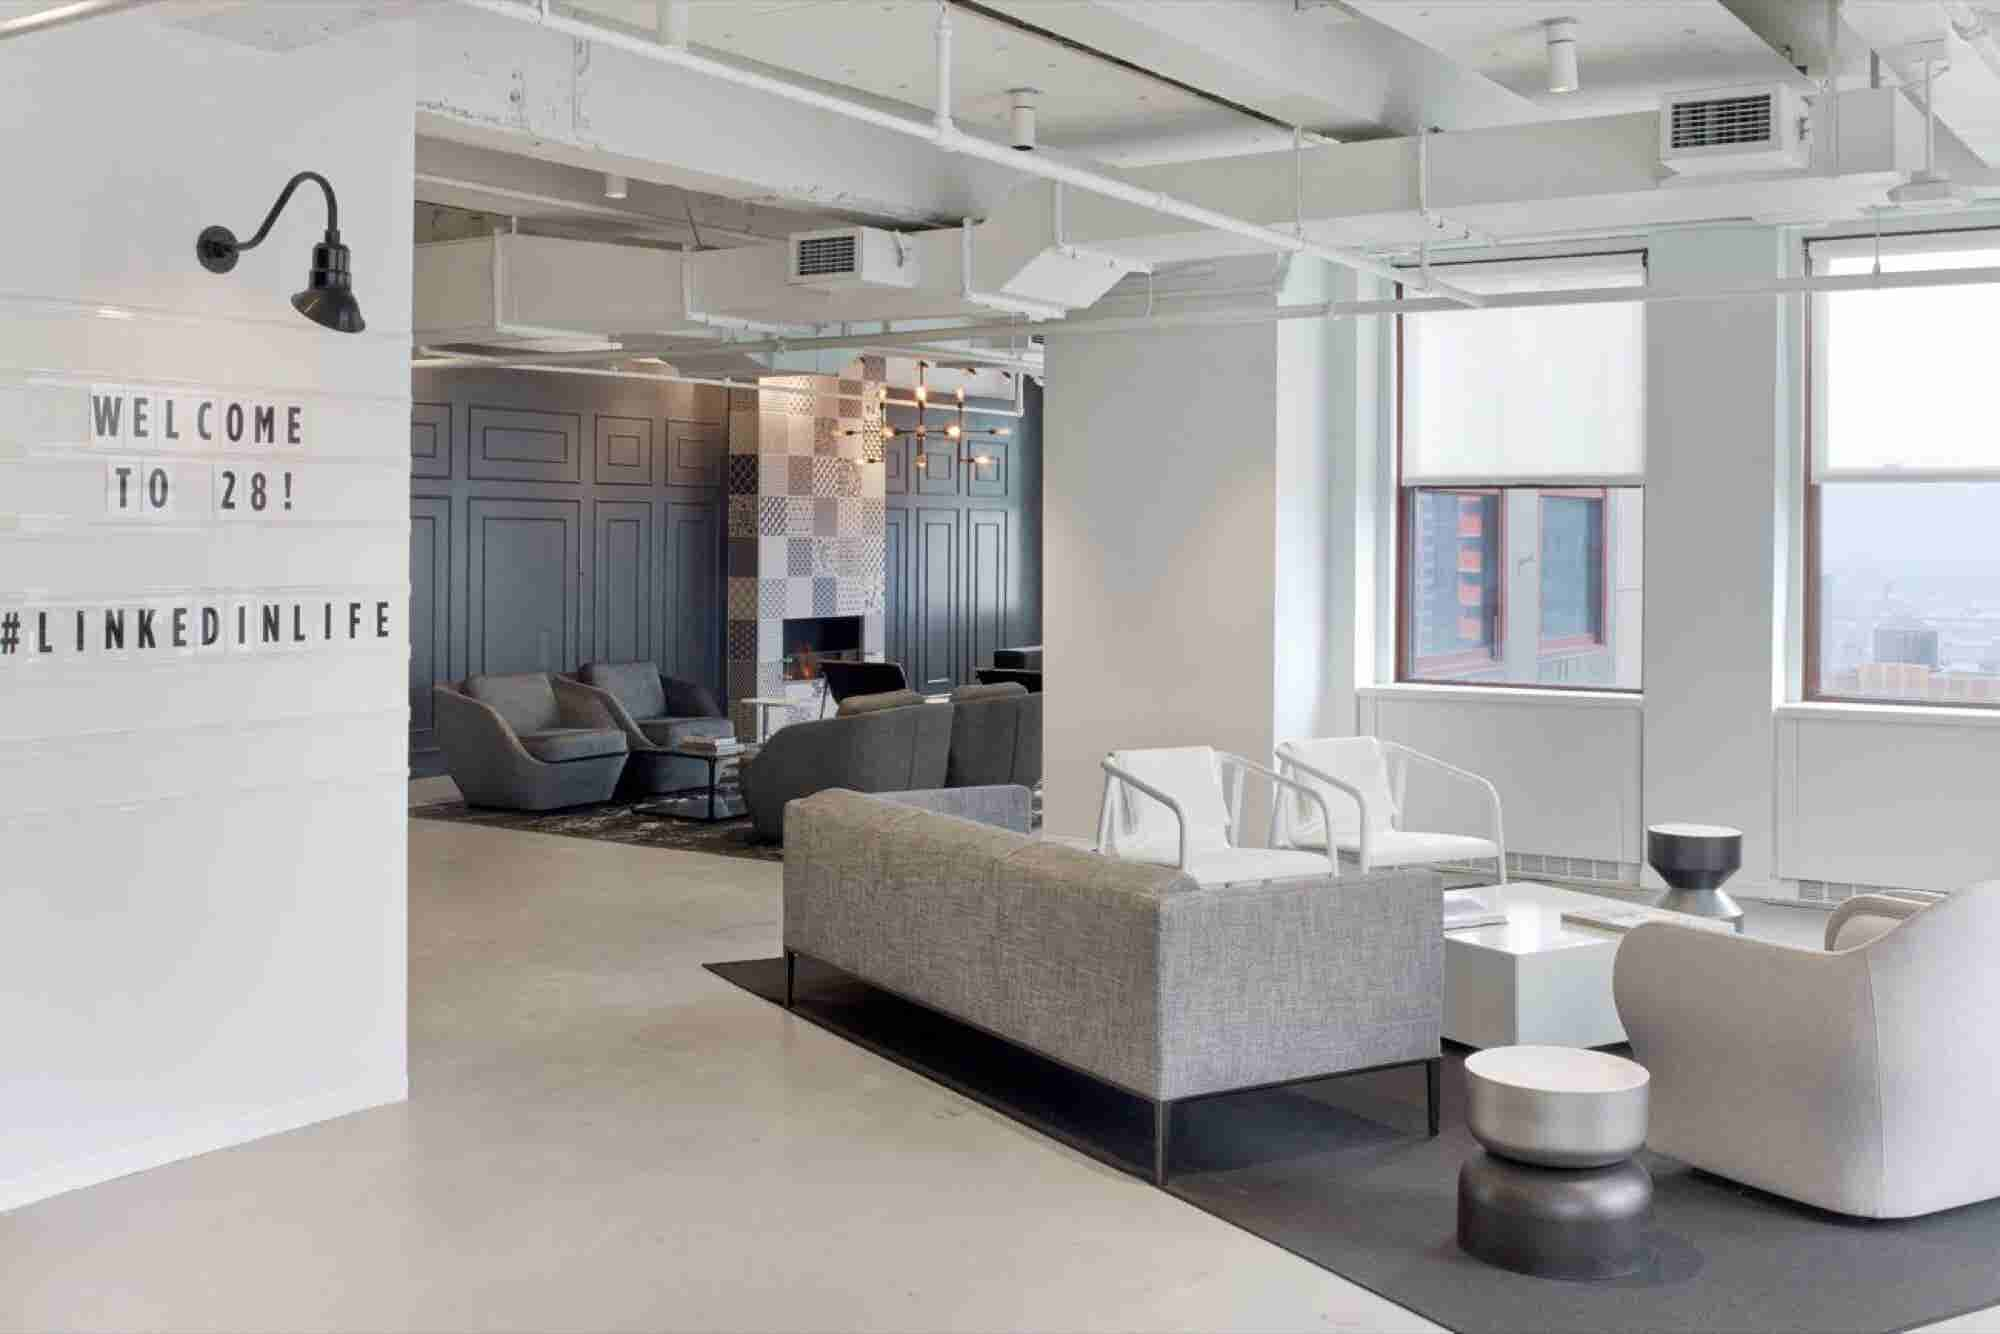 Tour LinkedIn's New York Offices, Where There's a Speakeasy and a Movi...